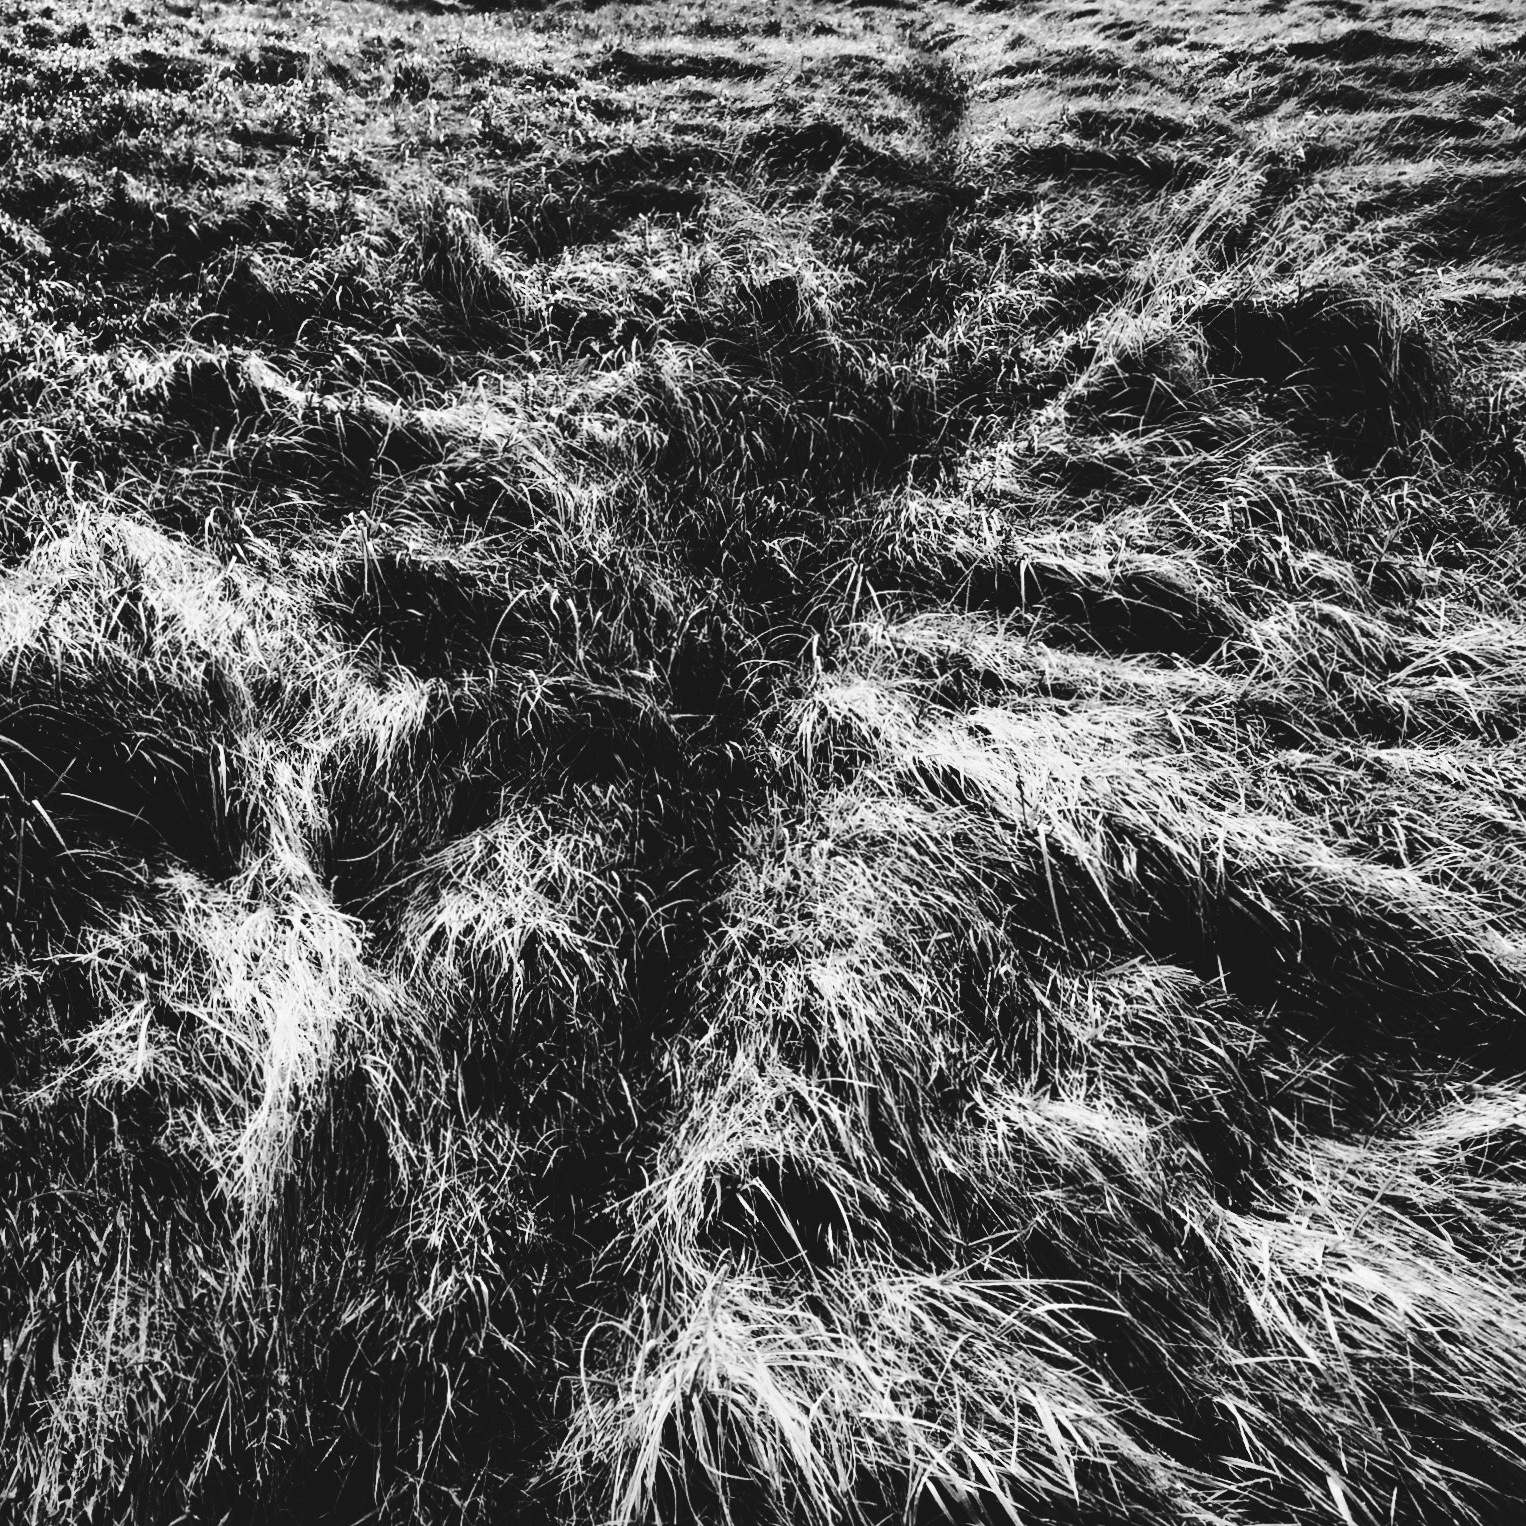 Roz Moreton - Grasses Project - Paths - Dog Walking Path - Burry Port 2019